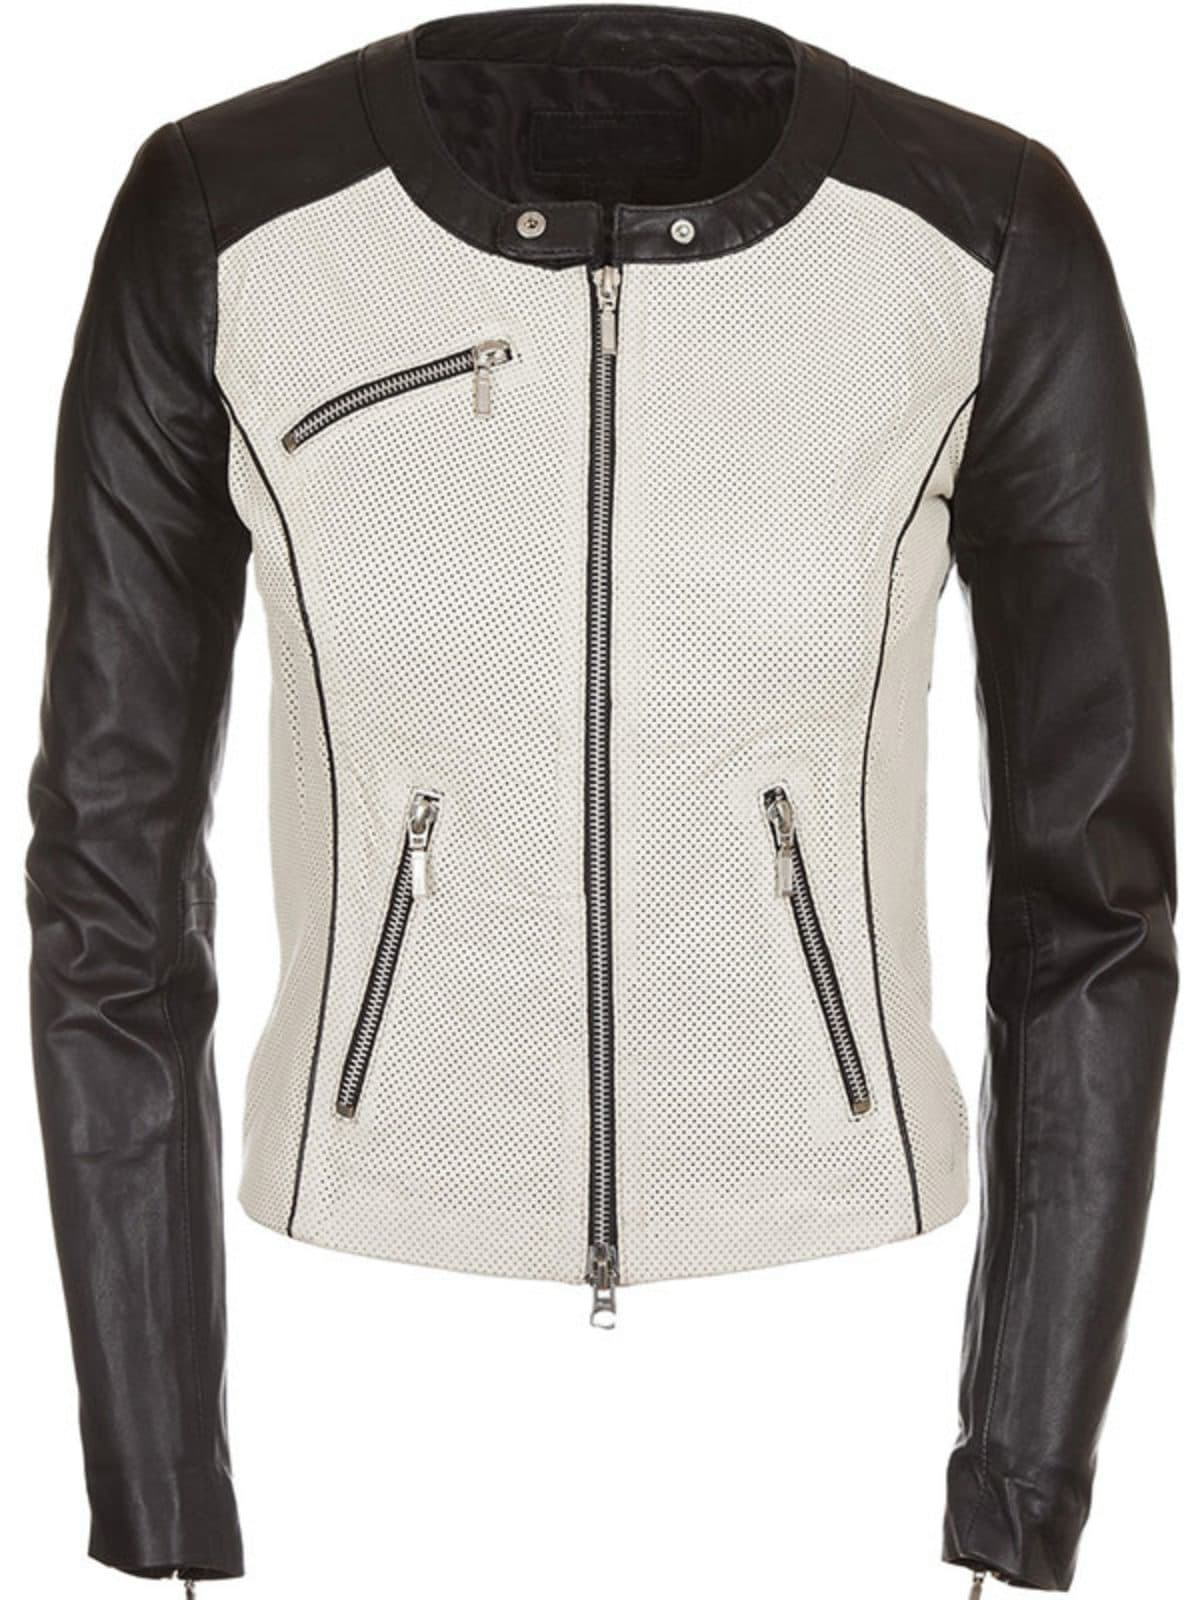 Womens Fashion Designer Leather Jacket Black and White 1